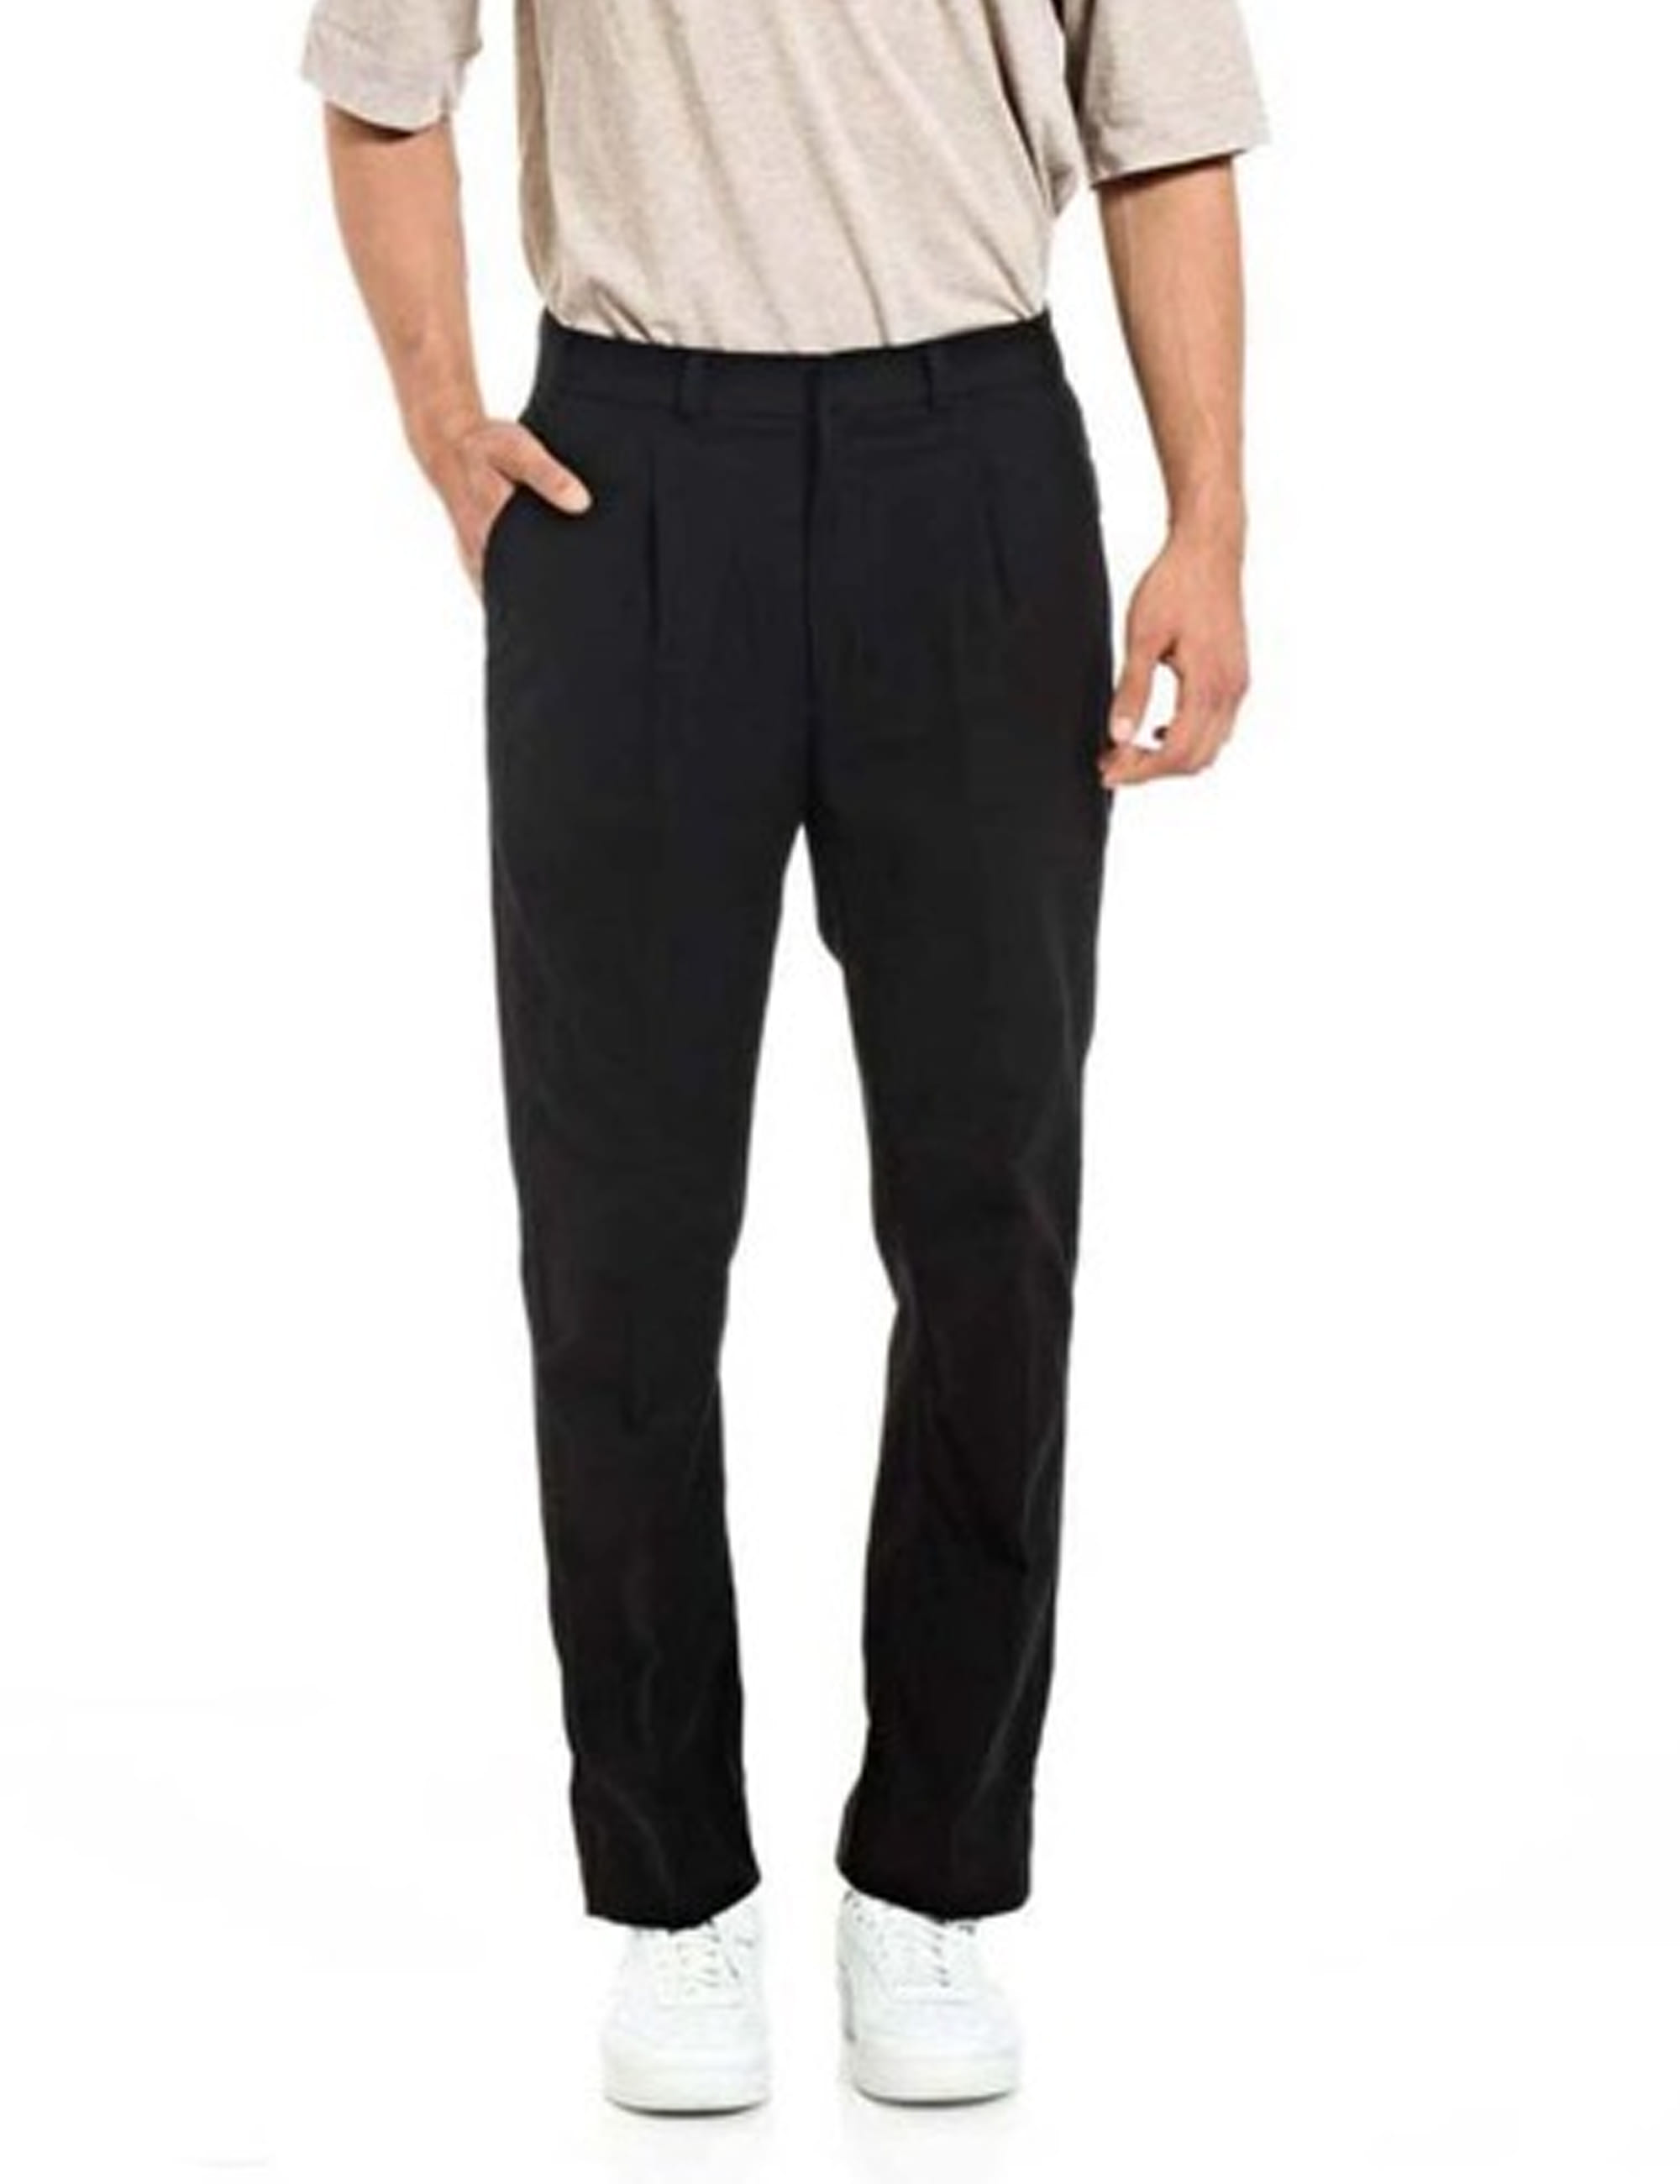 AIRTROUSER WOOL&COTTON_GRAY